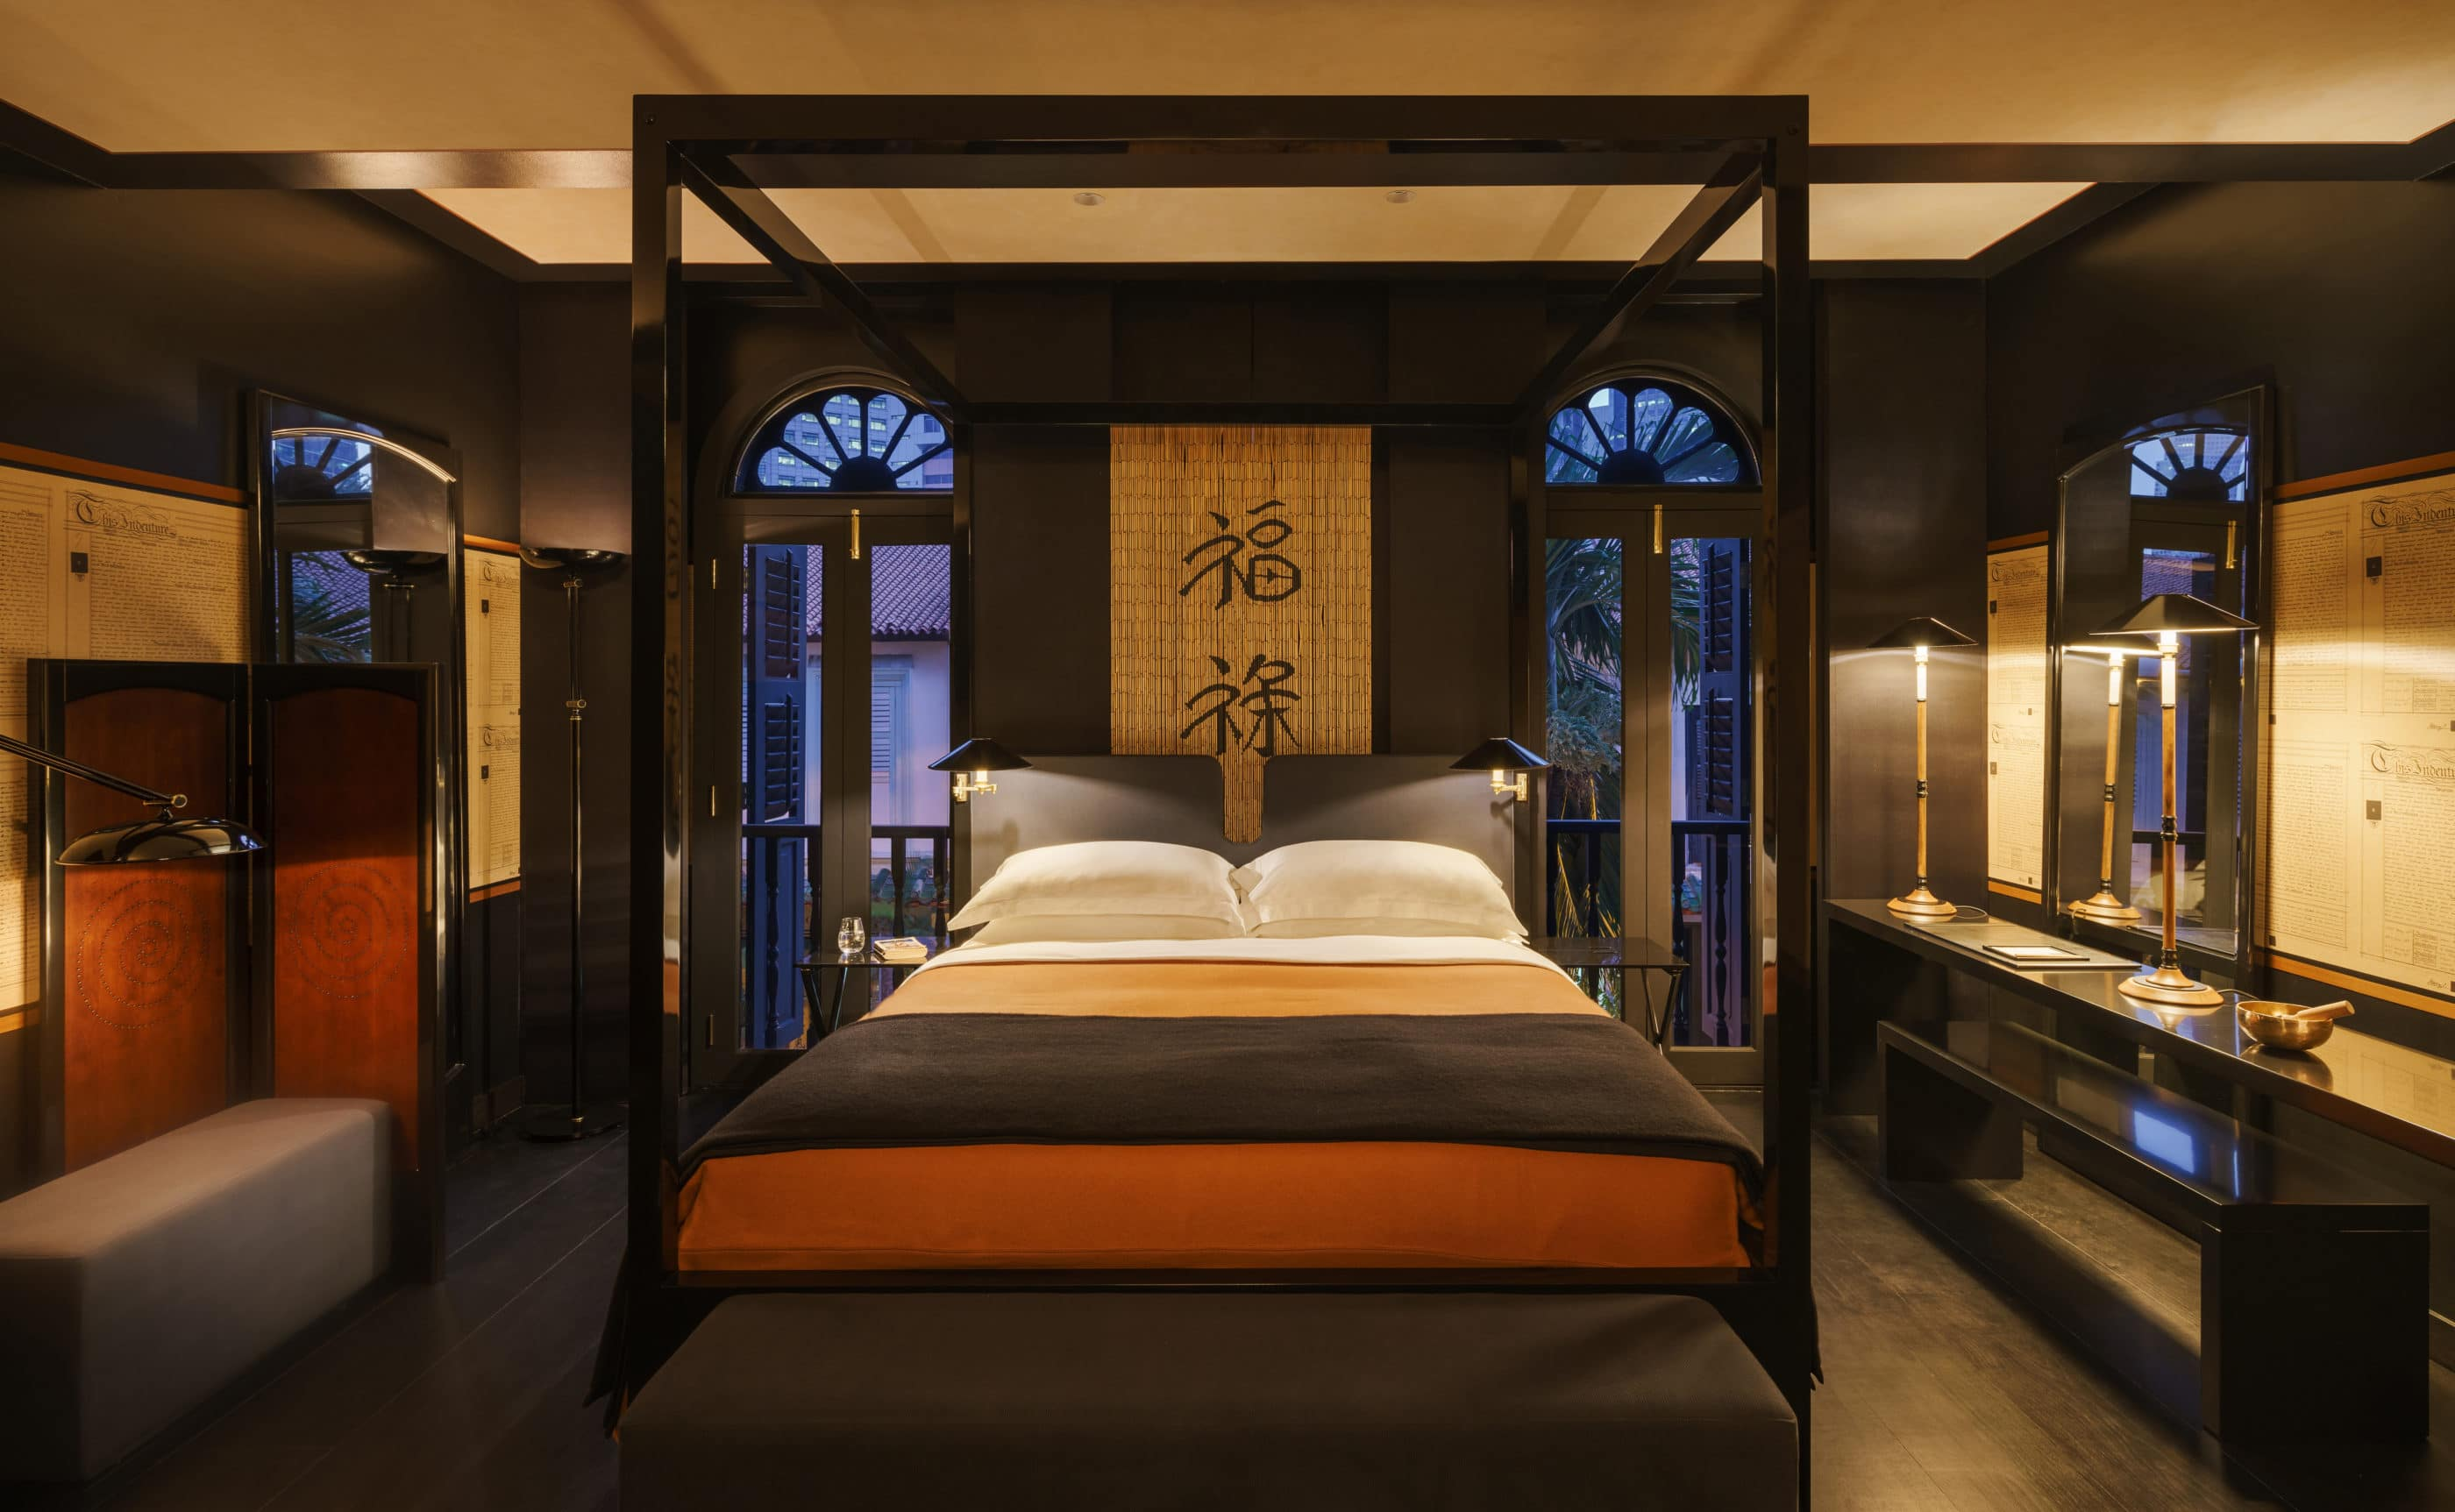 The Opium room features dark wood furnishings and walls with hints of rust-color.